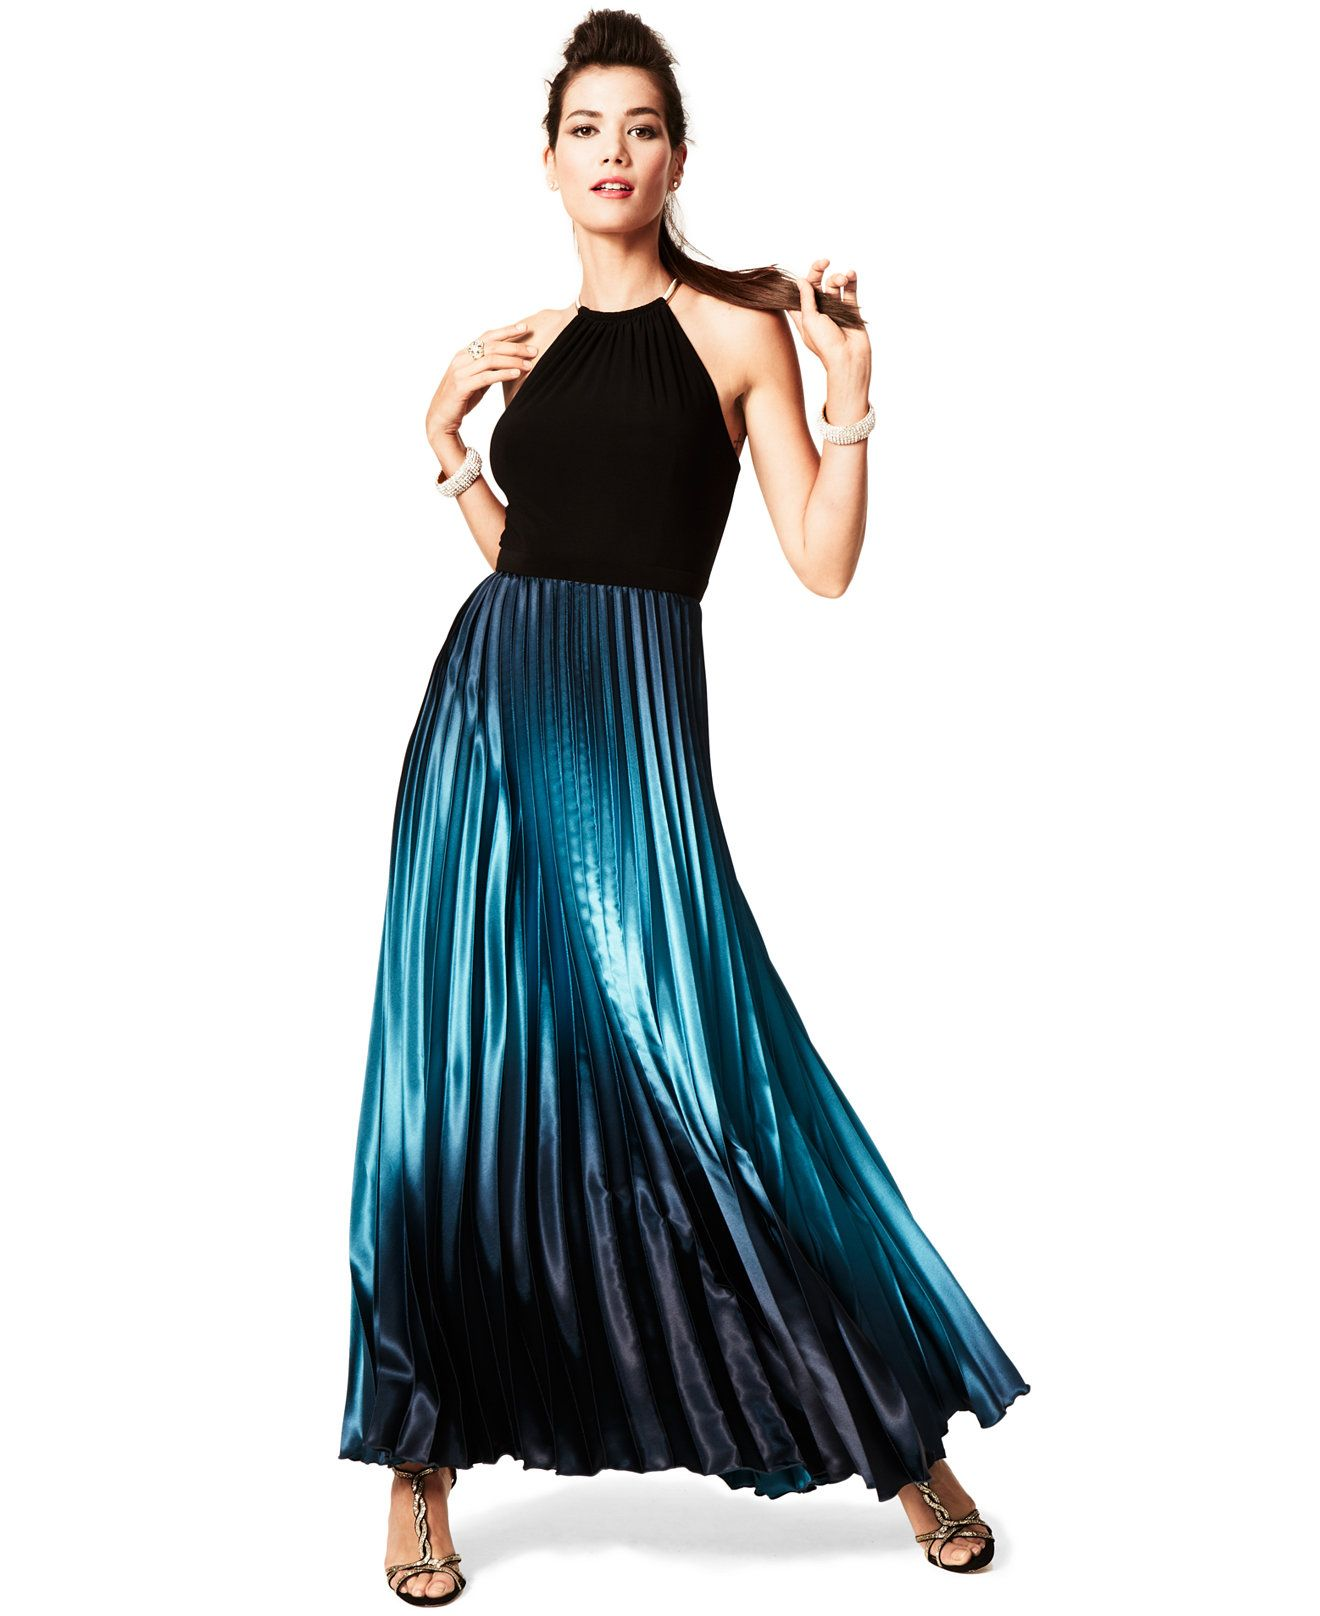 Xscape Sleeveless Ombre Halter Gown - Dresses - Women - Macy's ...